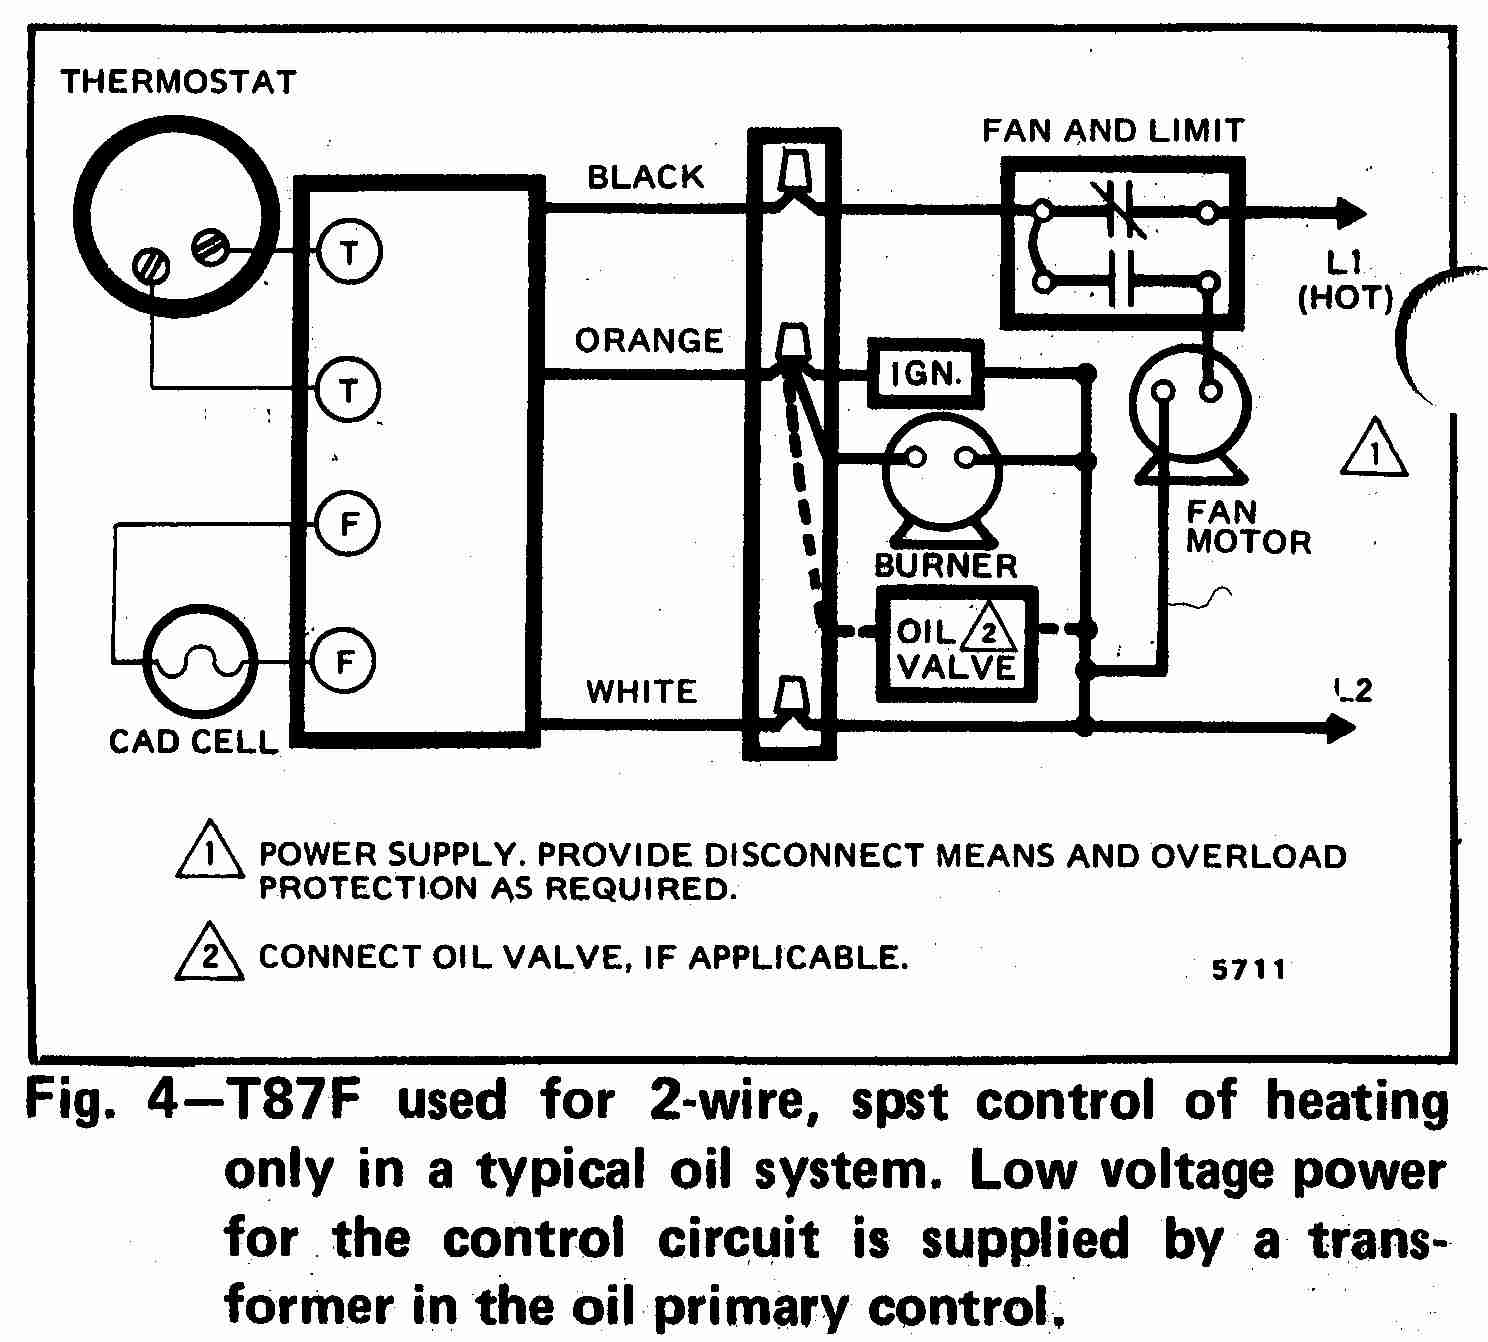 Fabulous Hvac Low Voltage Wiring Wiring Diagram Wiring Digital Resources Otenewoestevosnl